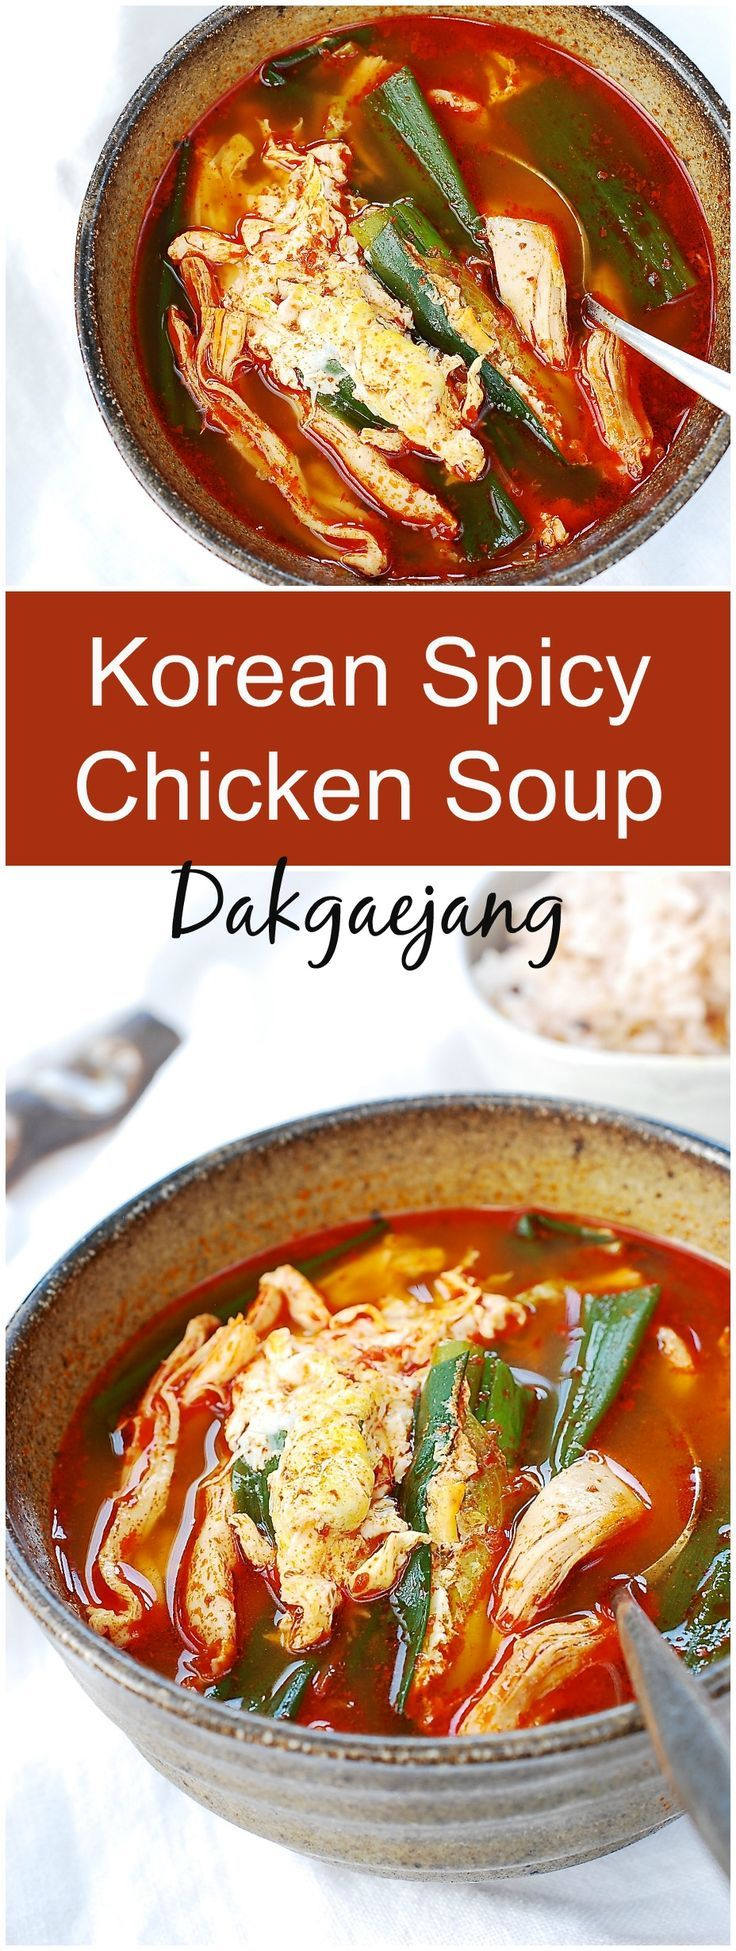 Korean spicy chicken soup 1000 ideas about korean chicken on korean spicy chicken soup 1000 ideas about korean chicken on pinterest healthy korean forumfinder Image collections